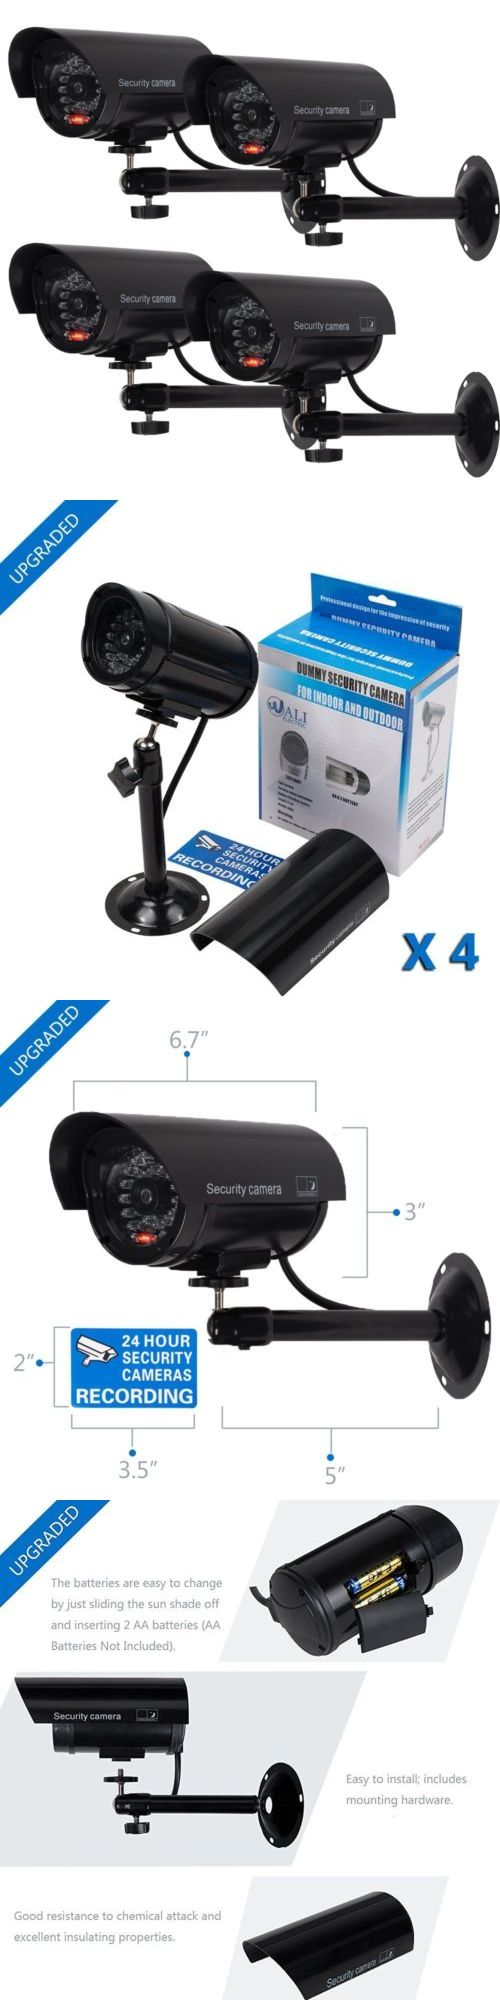 Dummy Cameras: Wali Bullet Dummy Fake Surveillance Security Cctv Dome Camera Indoor Outdoor ... BUY IT NOW ONLY: $31.99